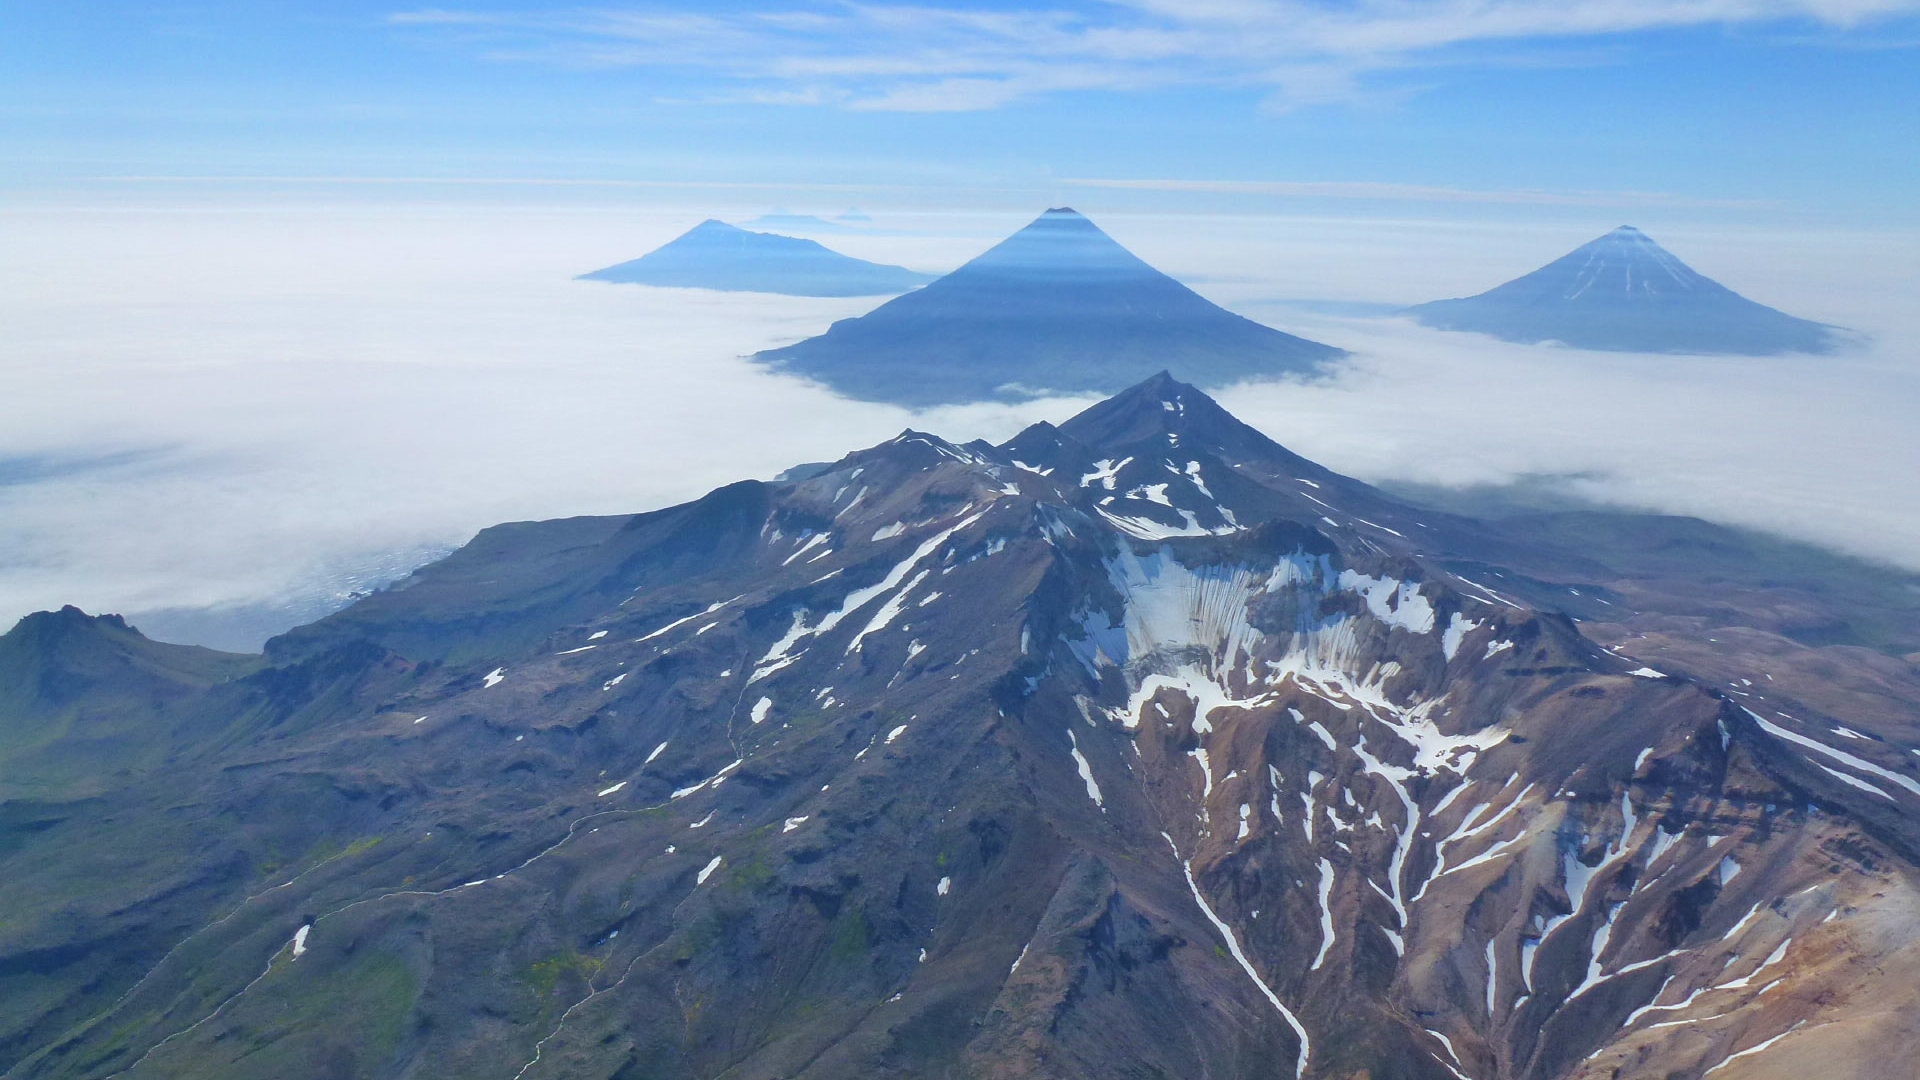 Chain of Alaskan islands might really be one monster volcano